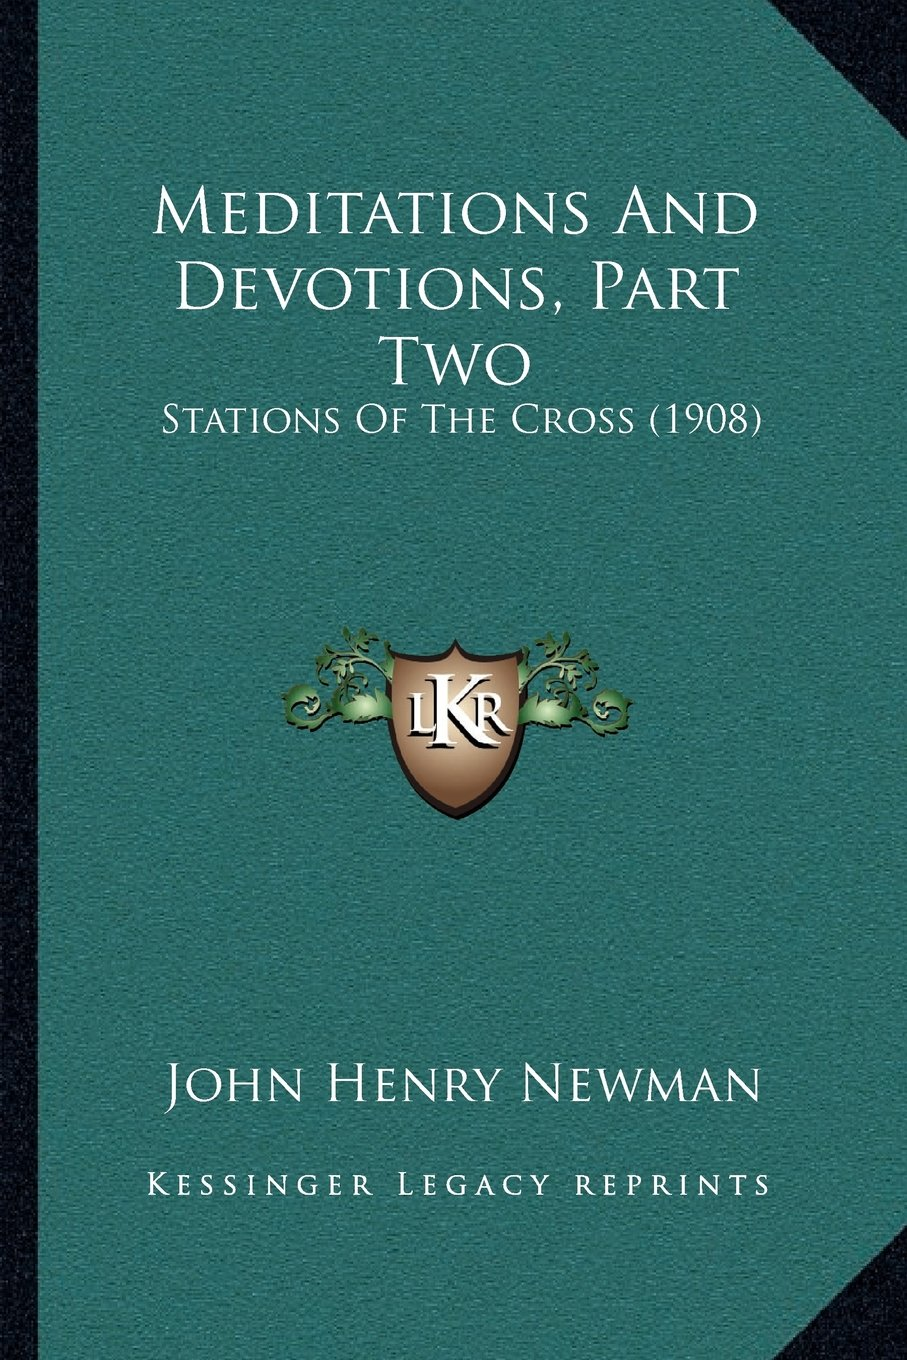 Download Meditations And Devotions, Part Two: Stations Of The Cross (1908) ebook